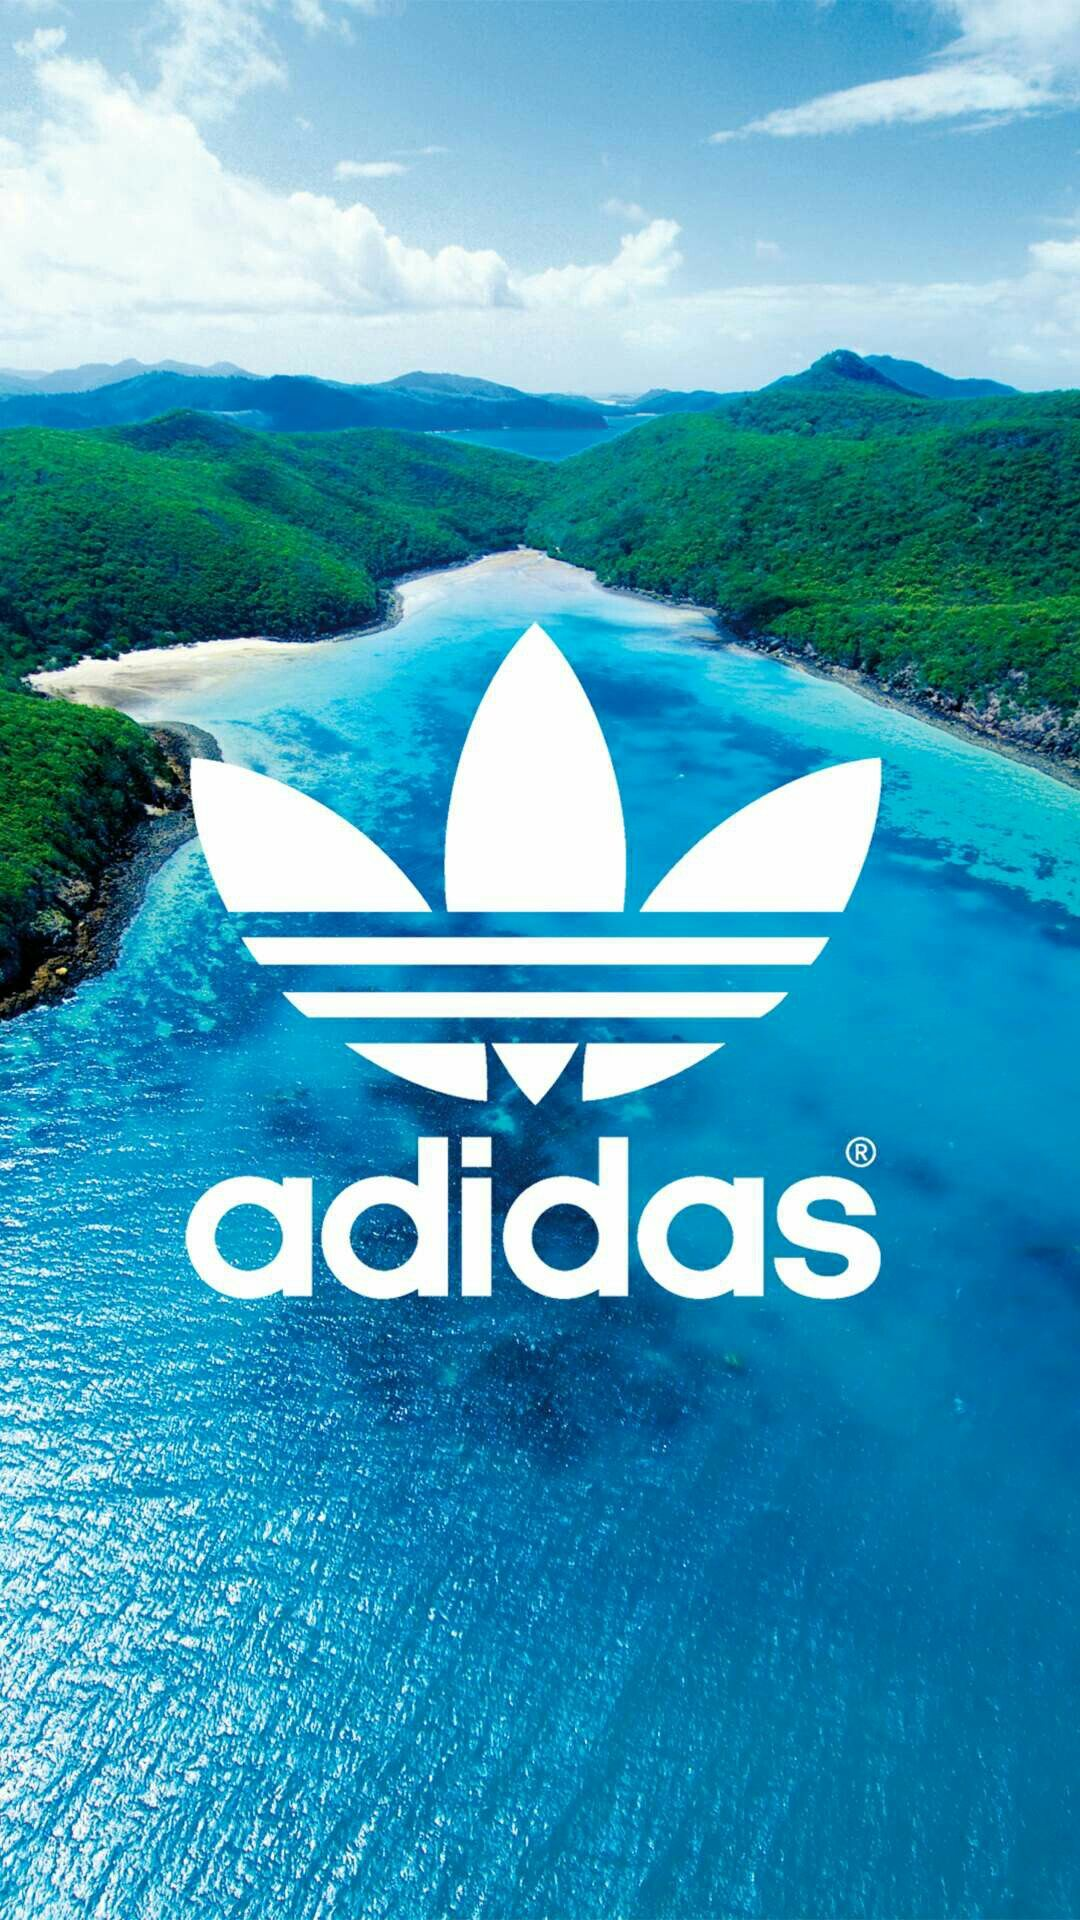 Adidas Background Fond d'écran sport, Fond ecran